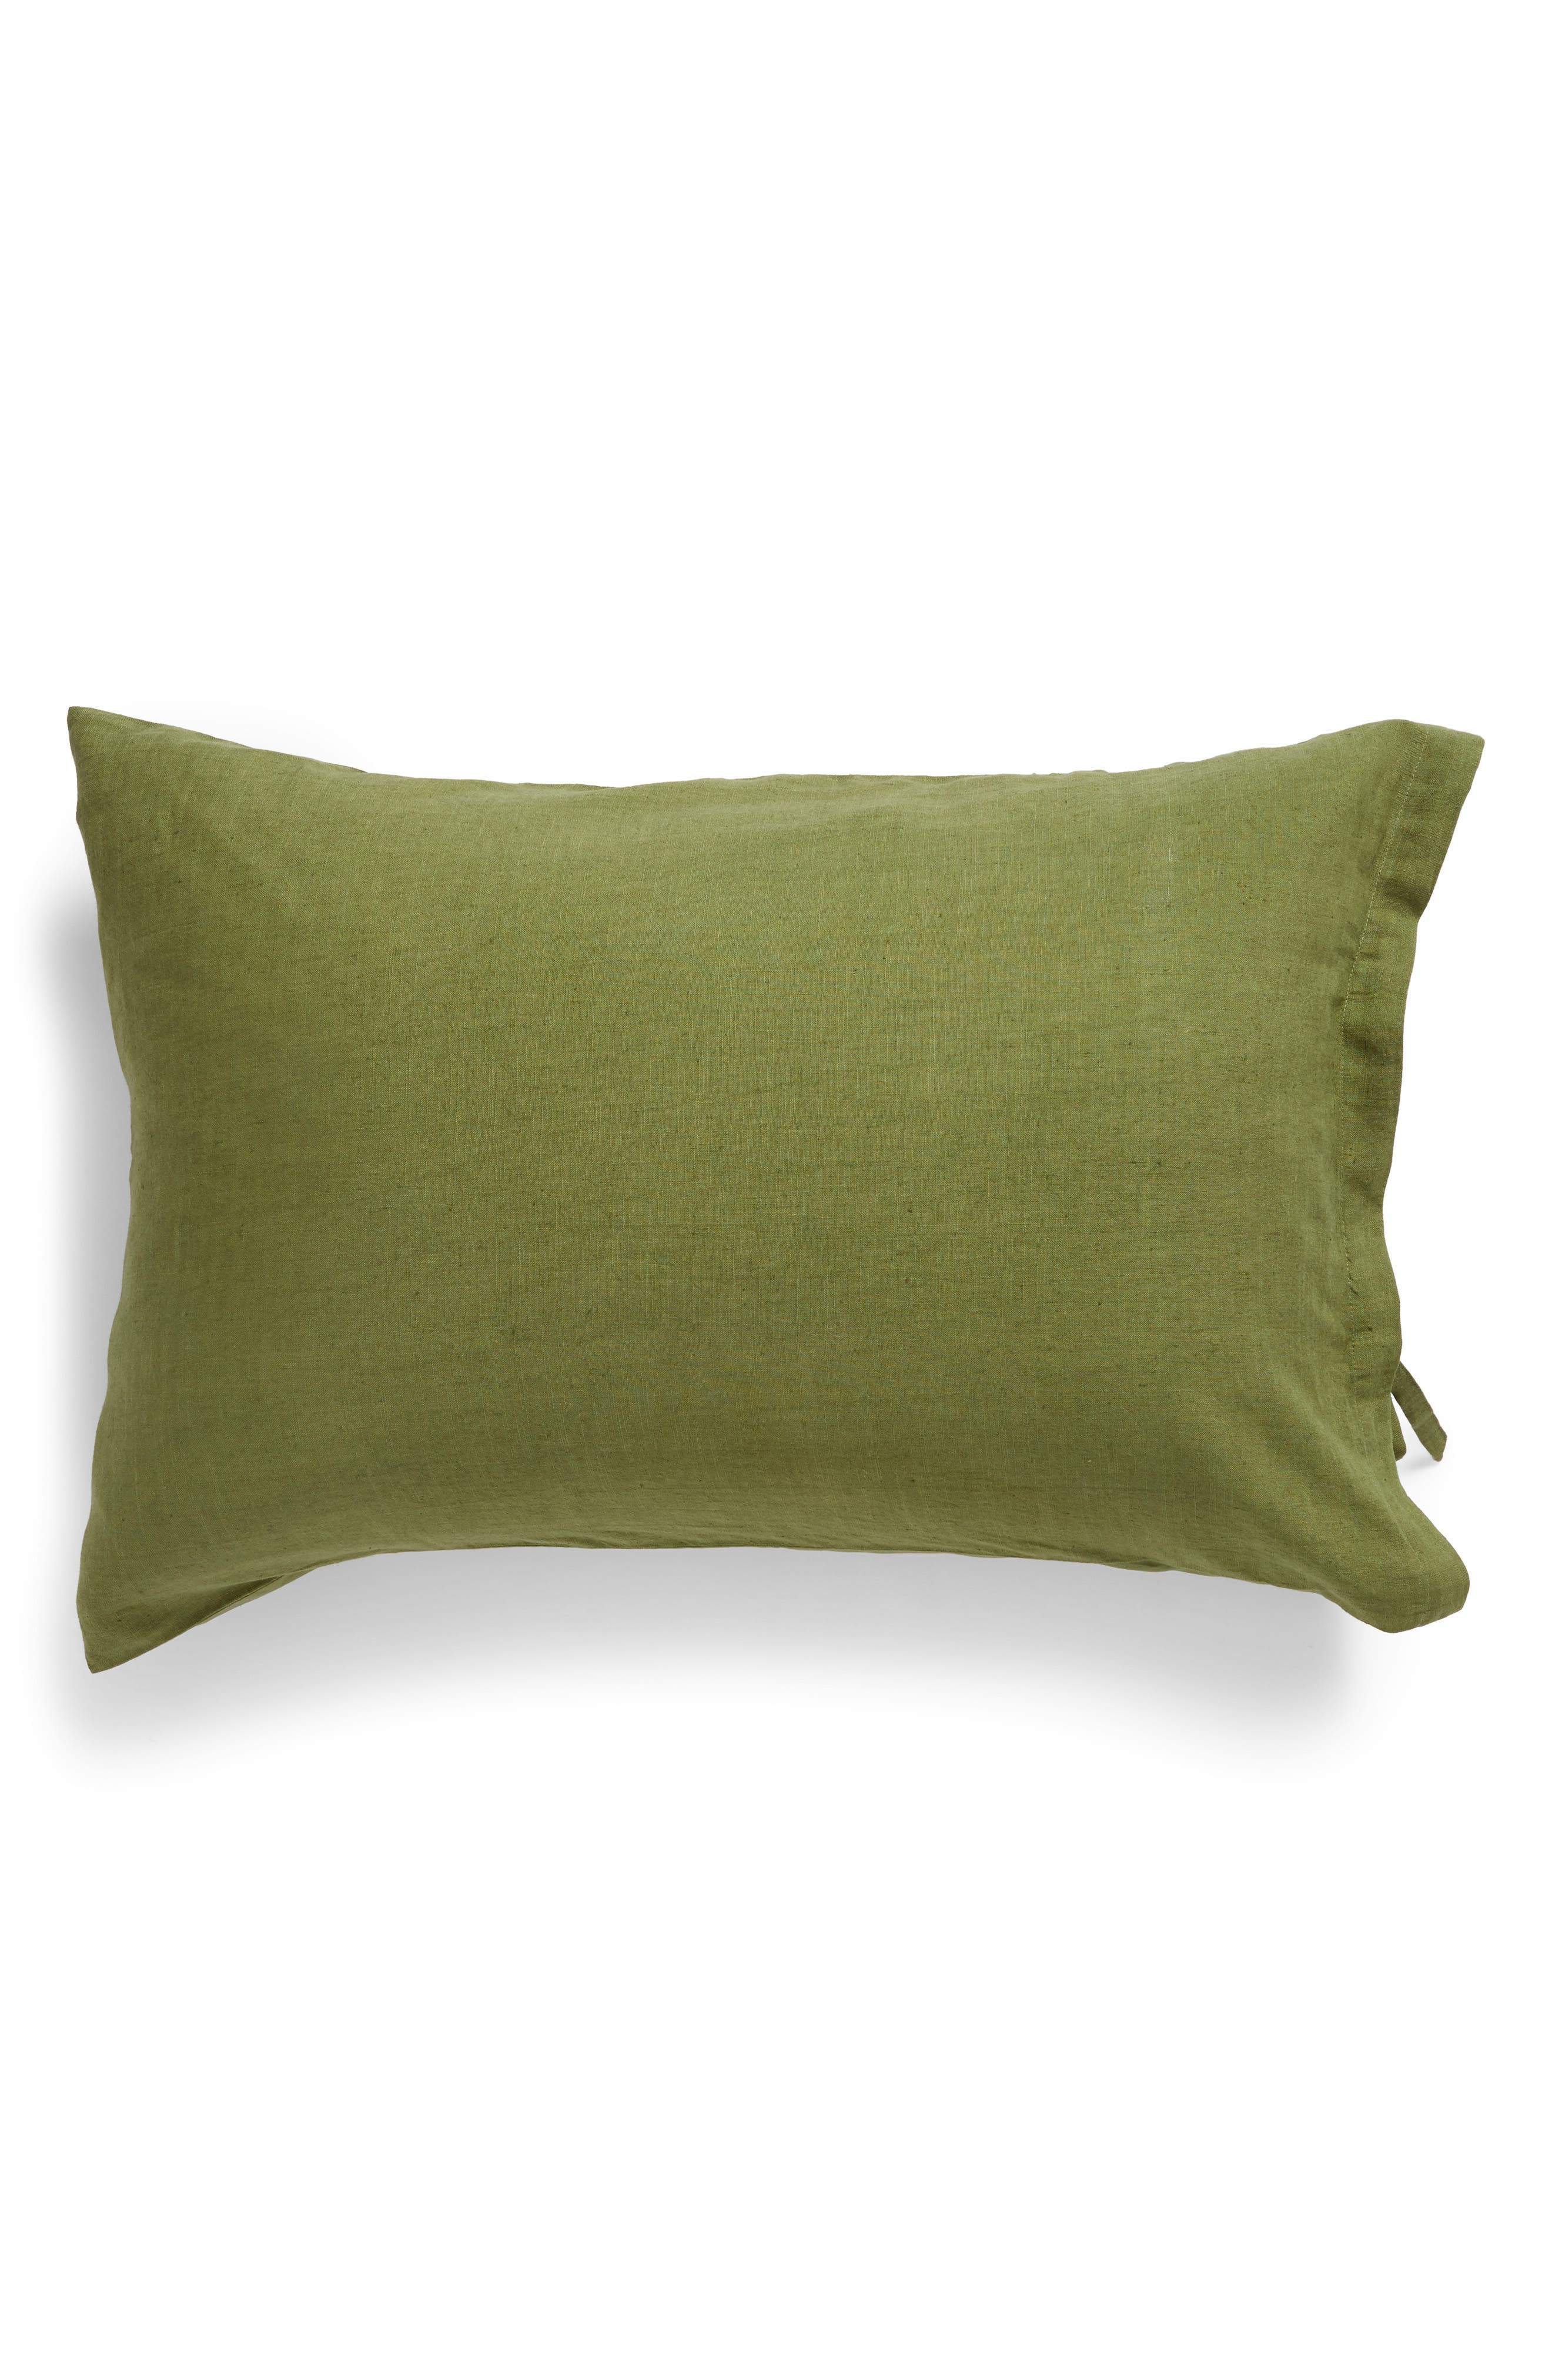 Relaxed Cotton & Linen Sham, Main, color, OLIVE SPICE